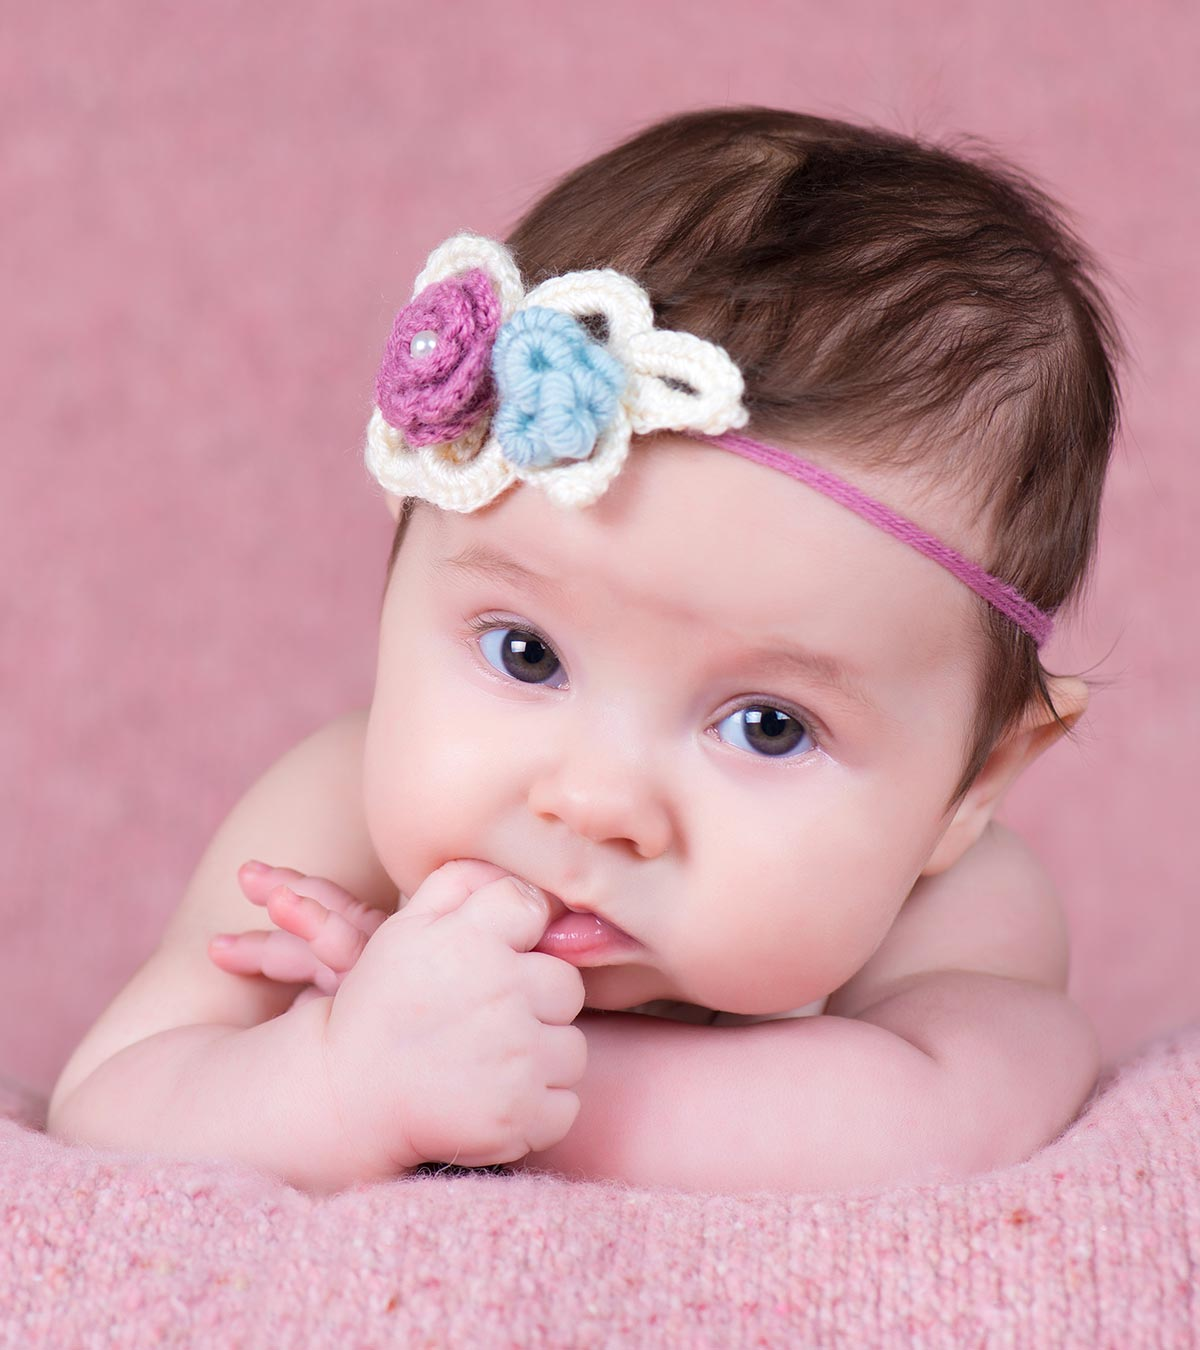 Rare Baby Names: 150 Names That Are On Verge of Extinction